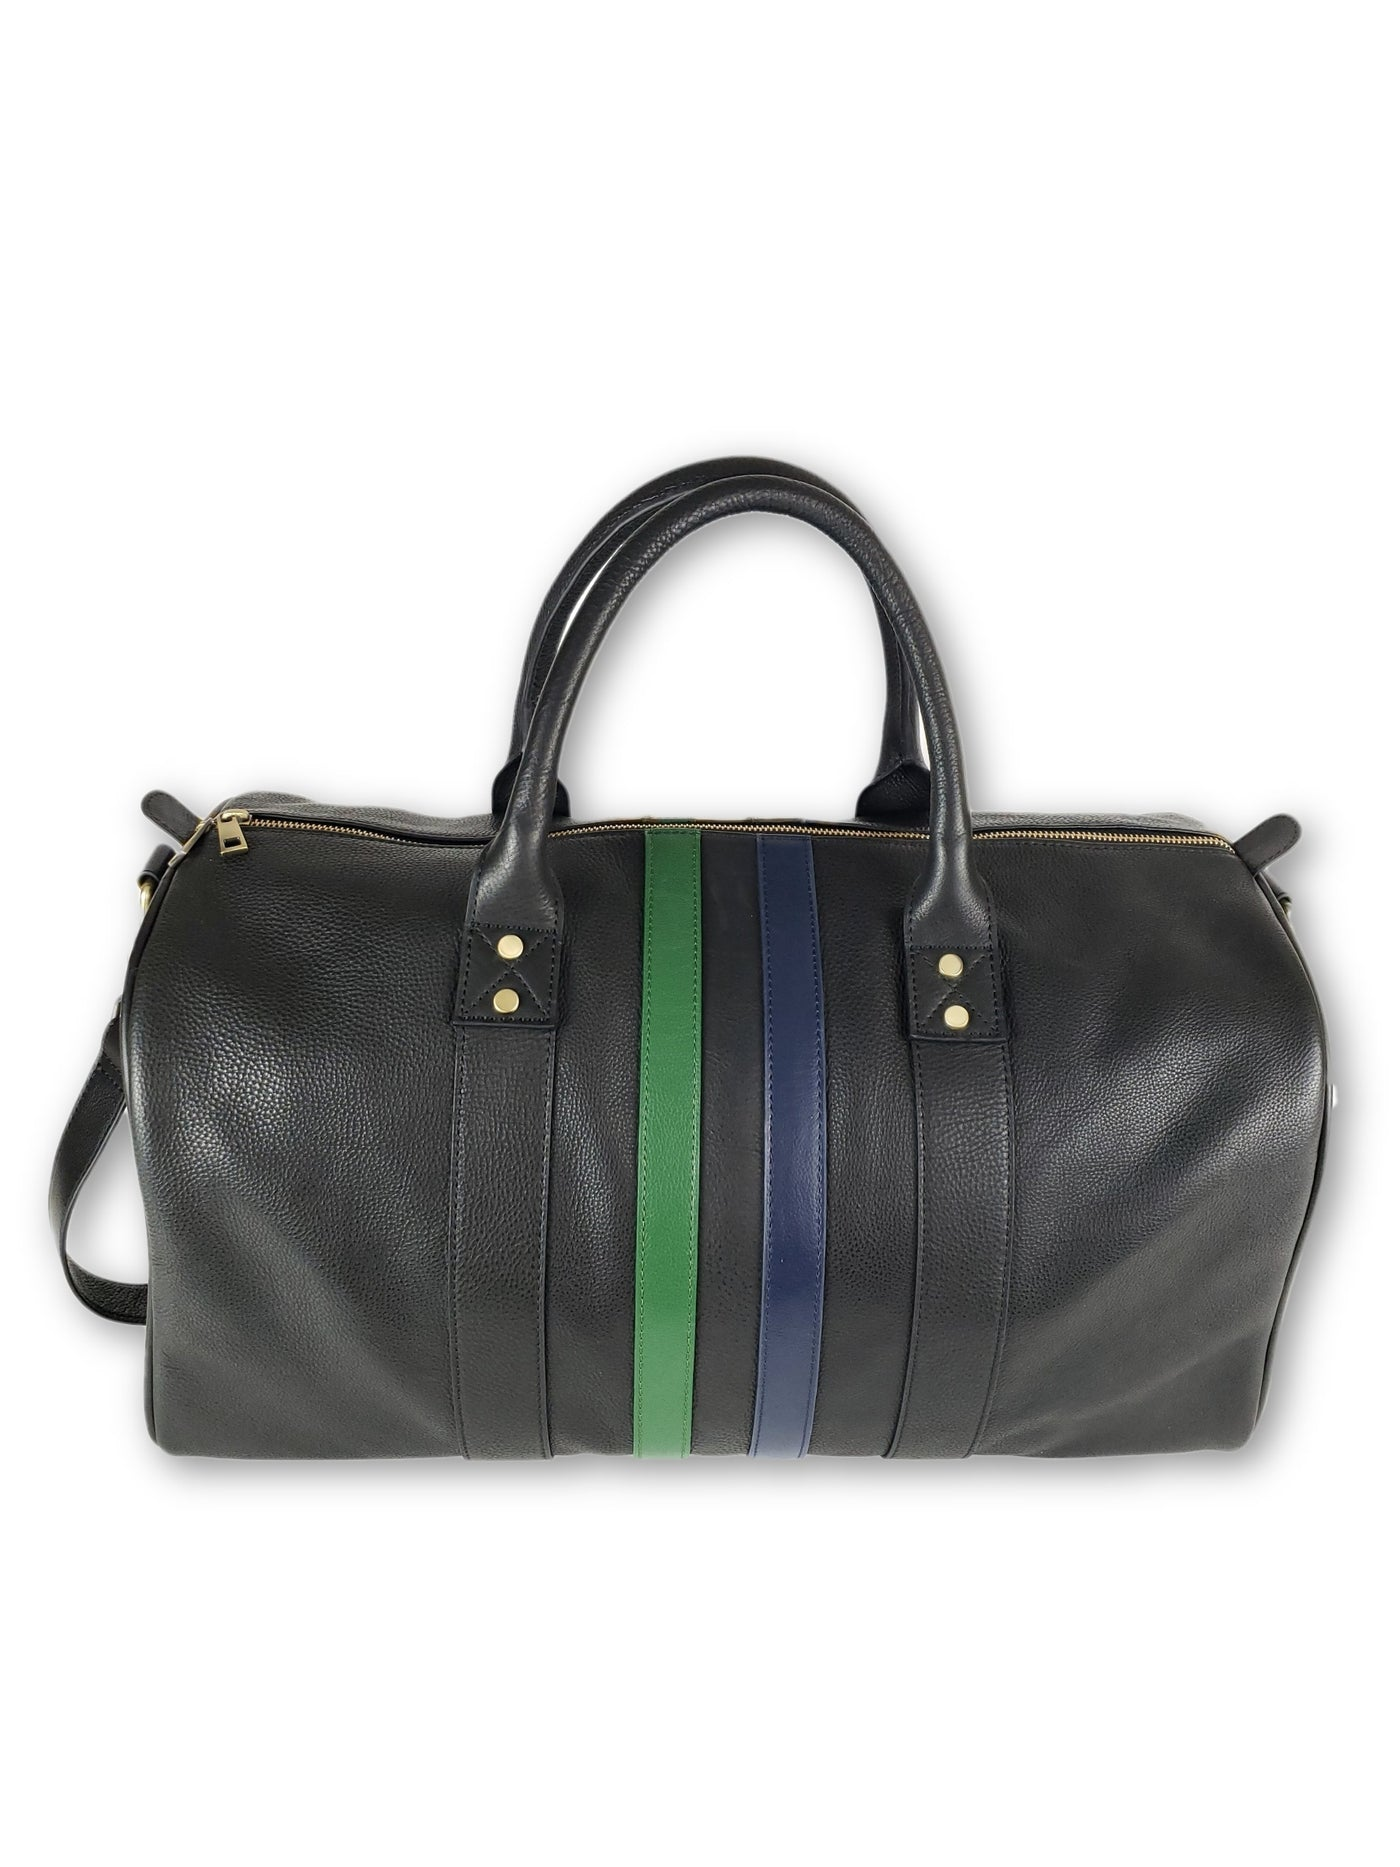 Black Leather Duffle Bag - FH Wadsworth